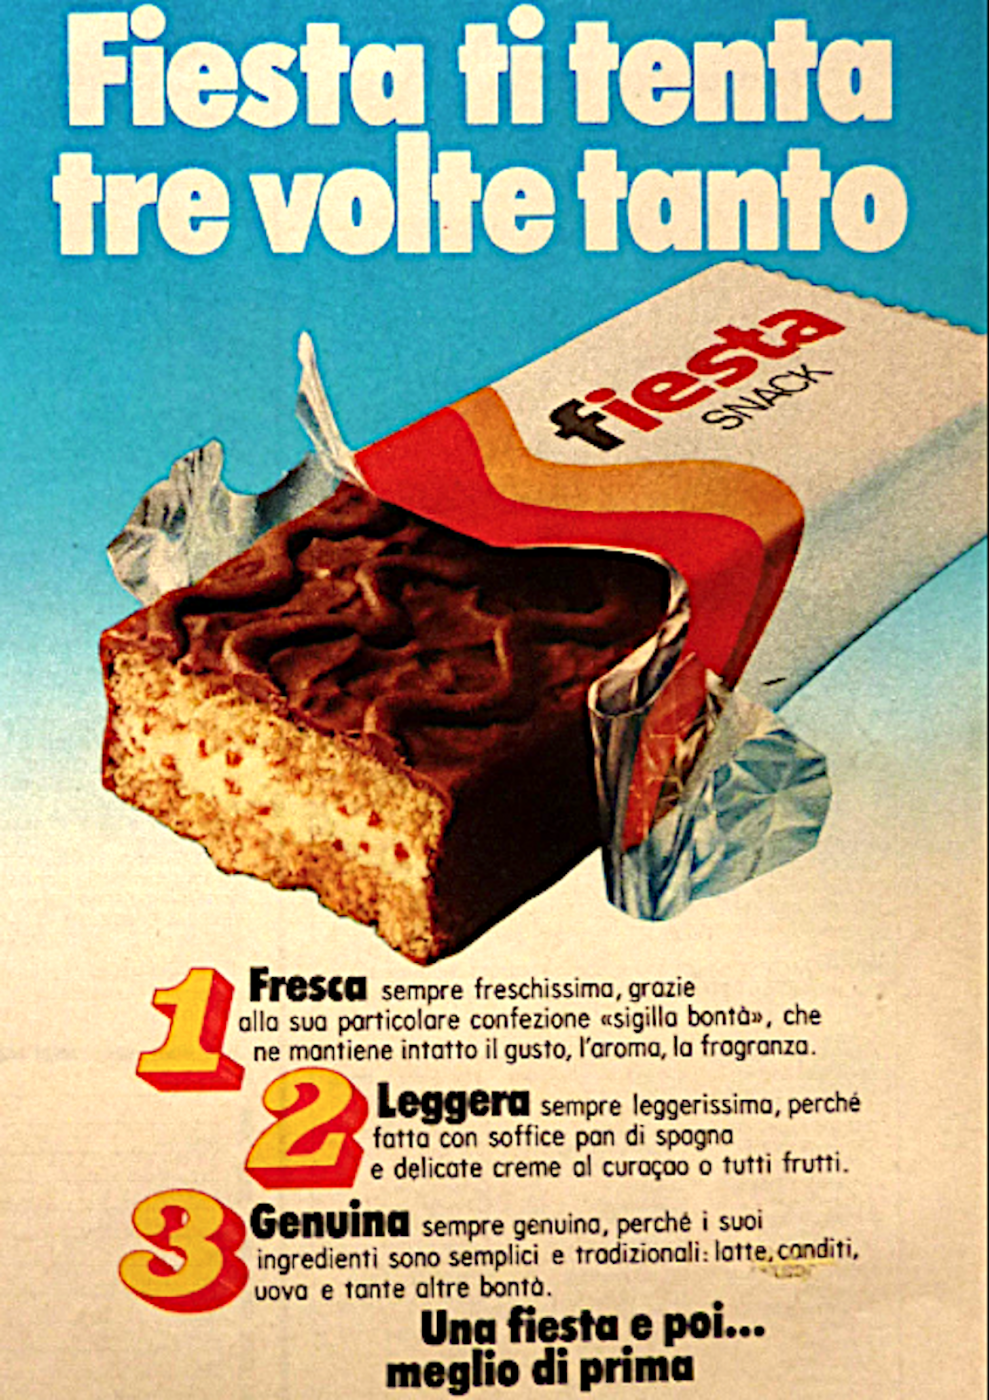 Fiesta Ferrero Here the real flavors of the Made in Italy (which we don't like to admit) must be tried to understand a nation.